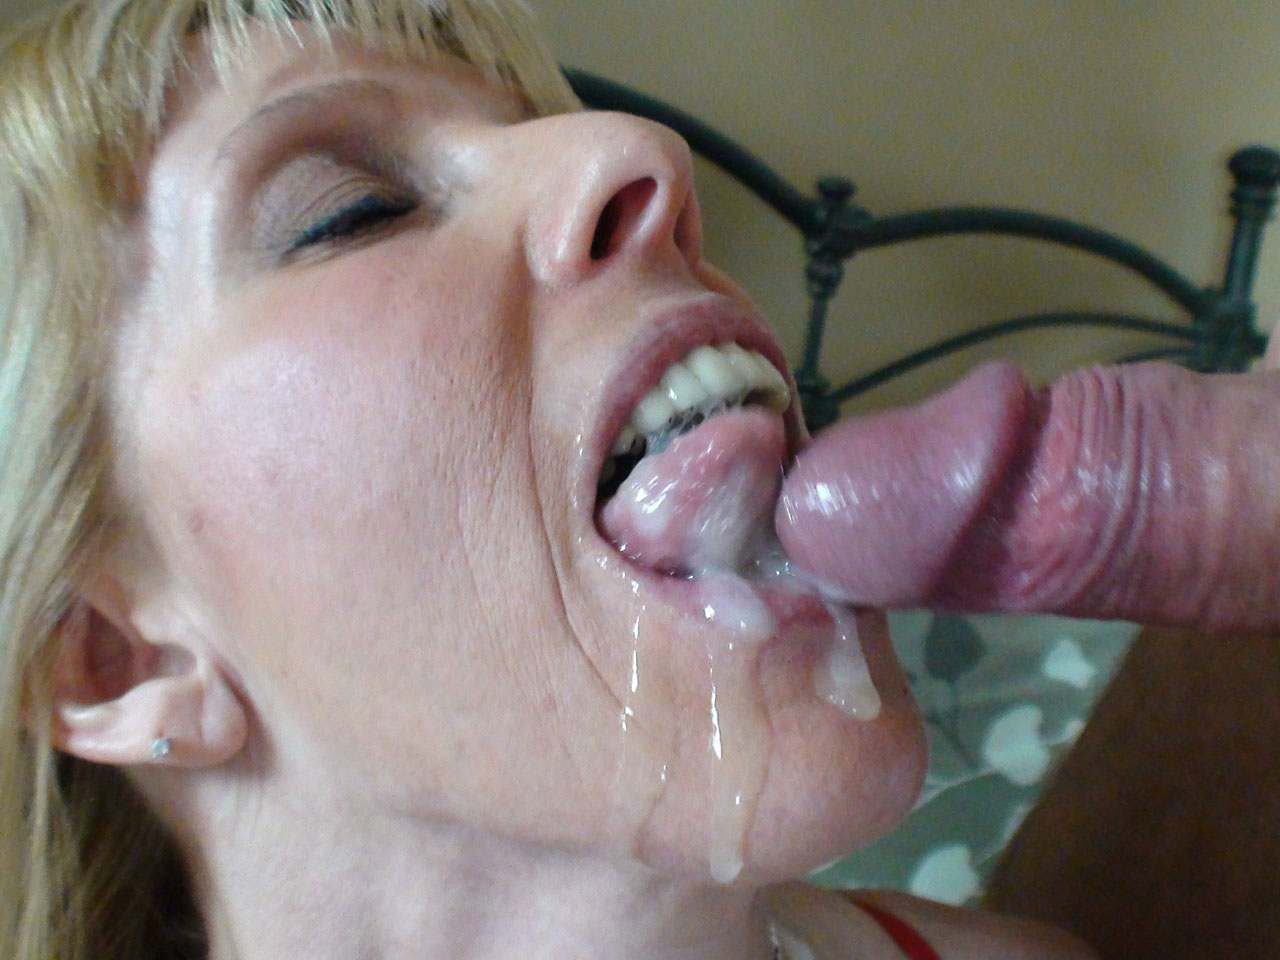 Carol cox fun fan facial - 2 part 3